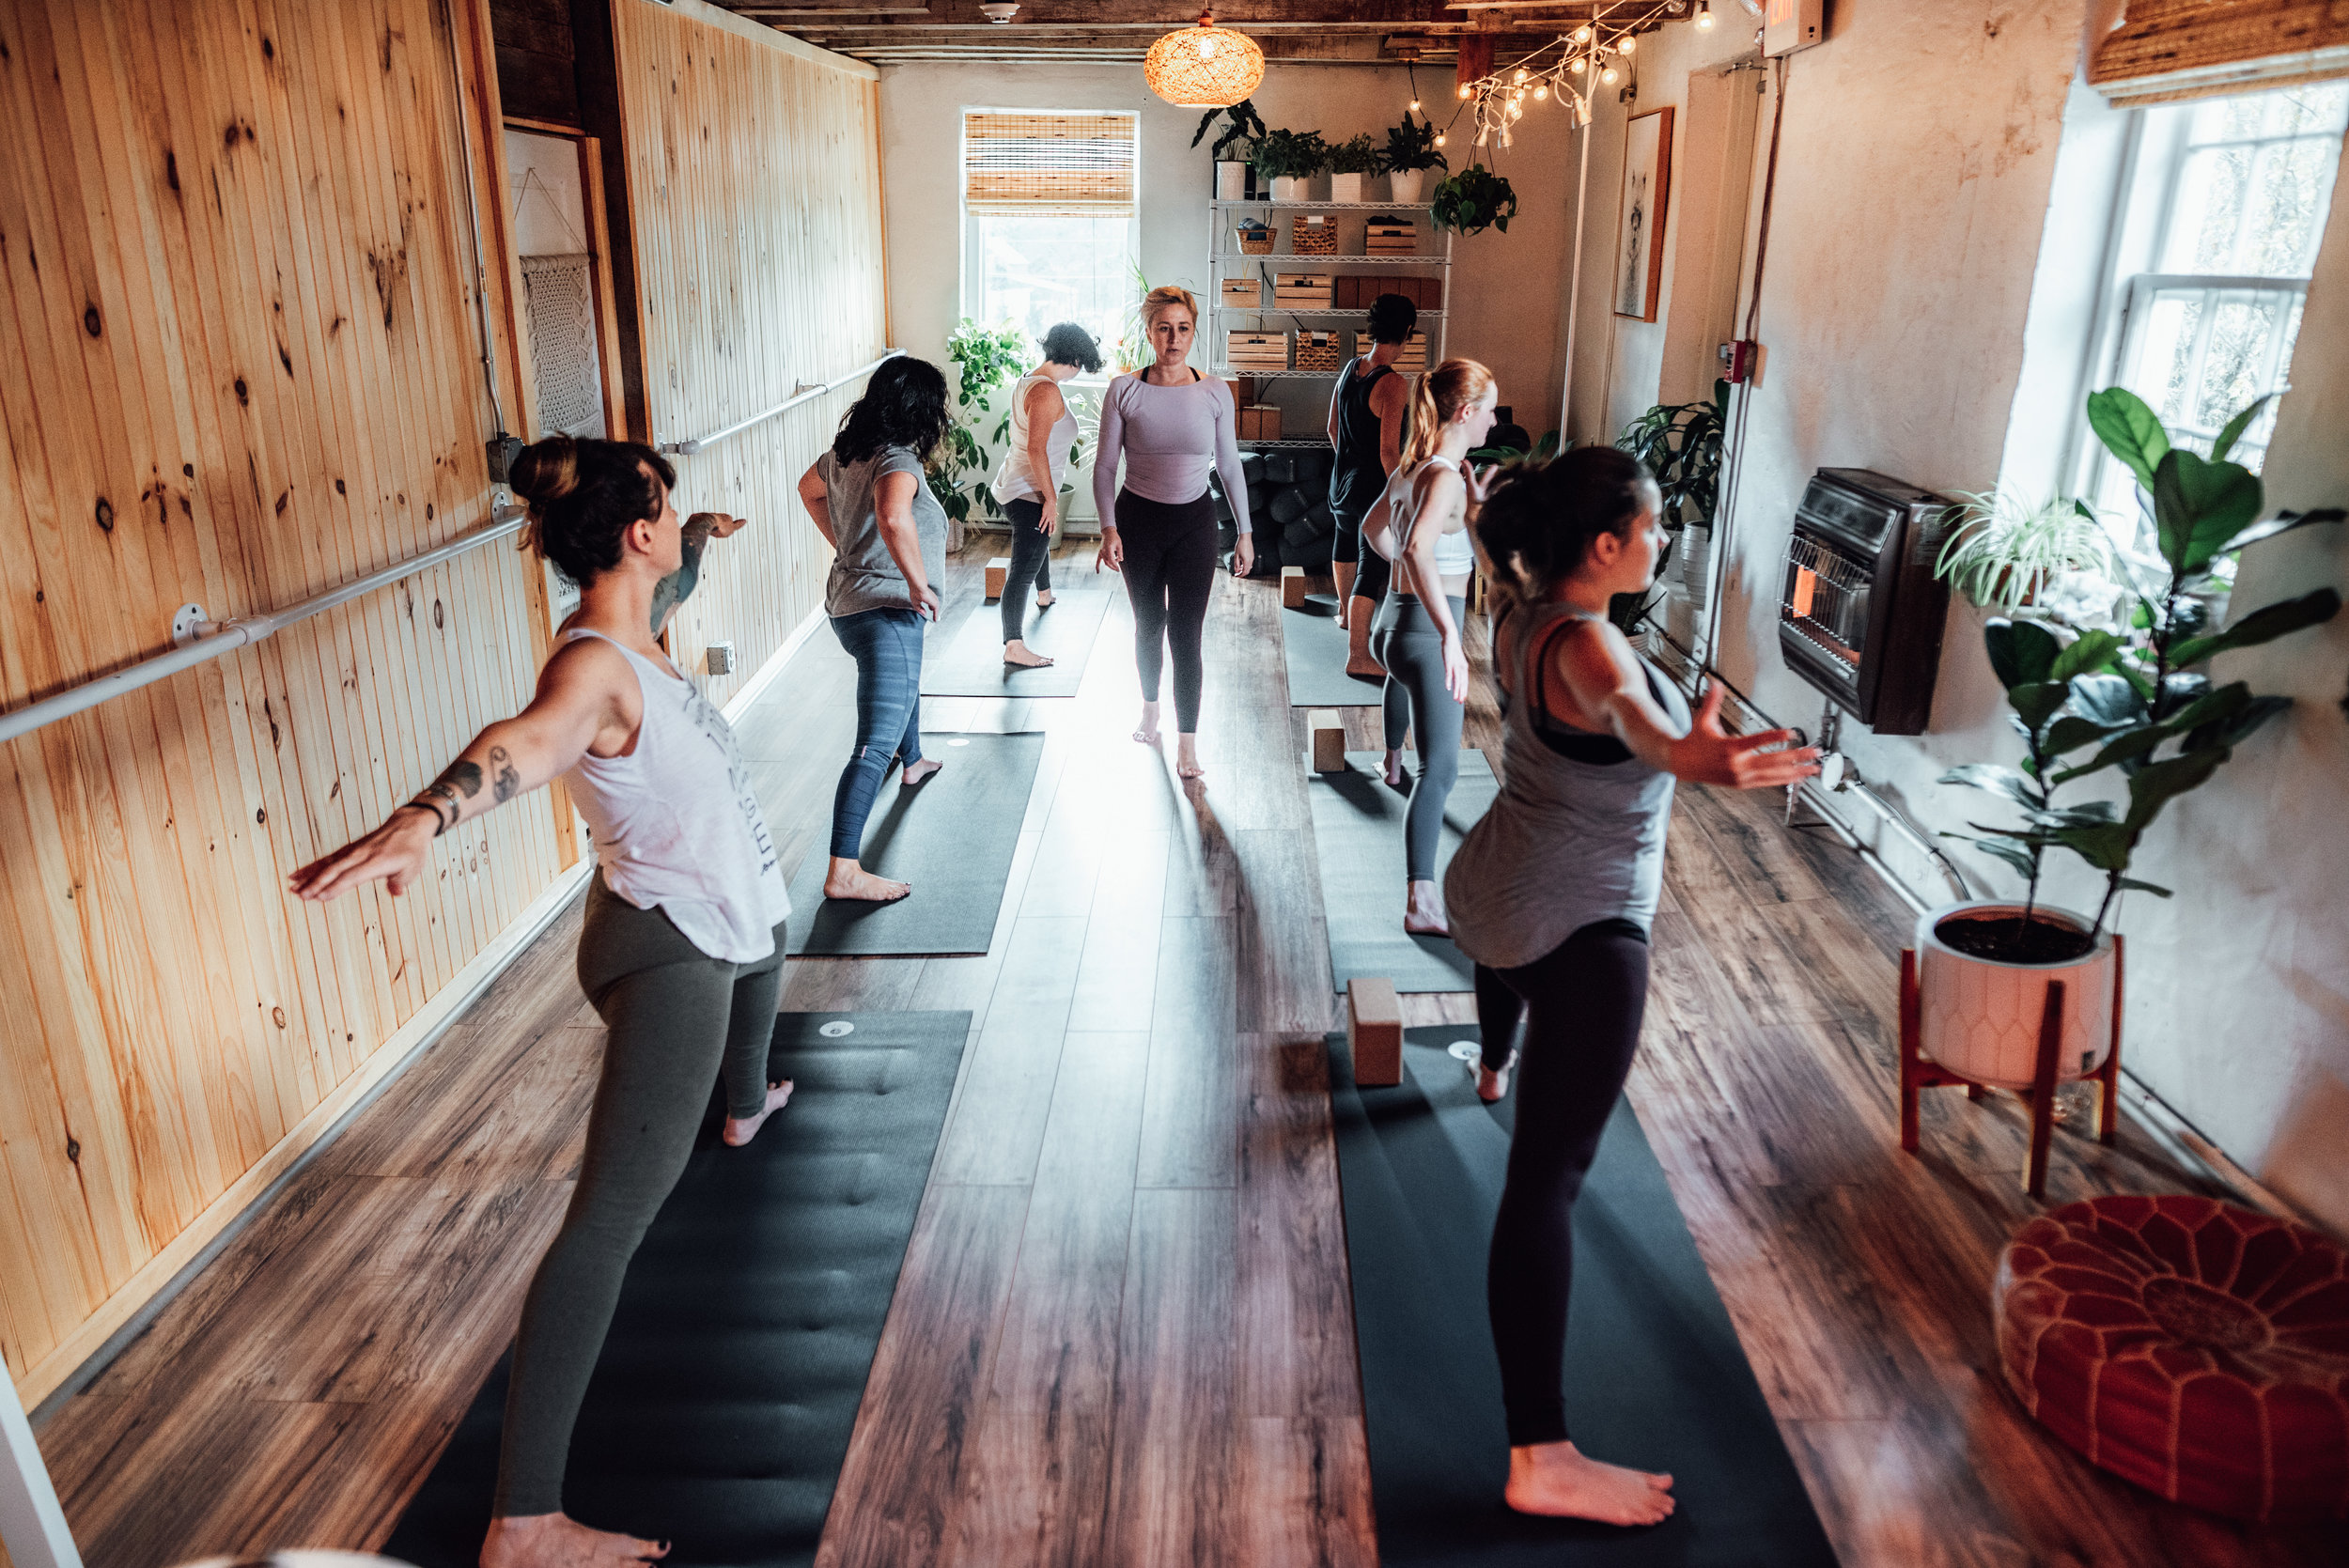 "Group Movement. - *New Student Special 30 days for $40Unlimited Classes!*Single Class Drop in $18*5 Class Pack $65 (5 class @ $13 each)exp. 6 month*10 Class Pack $120 (10 class @ $12 each)exp. 12 month*20 Class Pack $210 (20 class @ $10.50 each)*Unlimited Classes ""Auto Pay"" $80 a Month.*Unlimited Classes W/O Auto Pay $99 a Month.**Senior & Student 15% OFF inquire in studio****To set up Auto Pay Inquire in studio**"